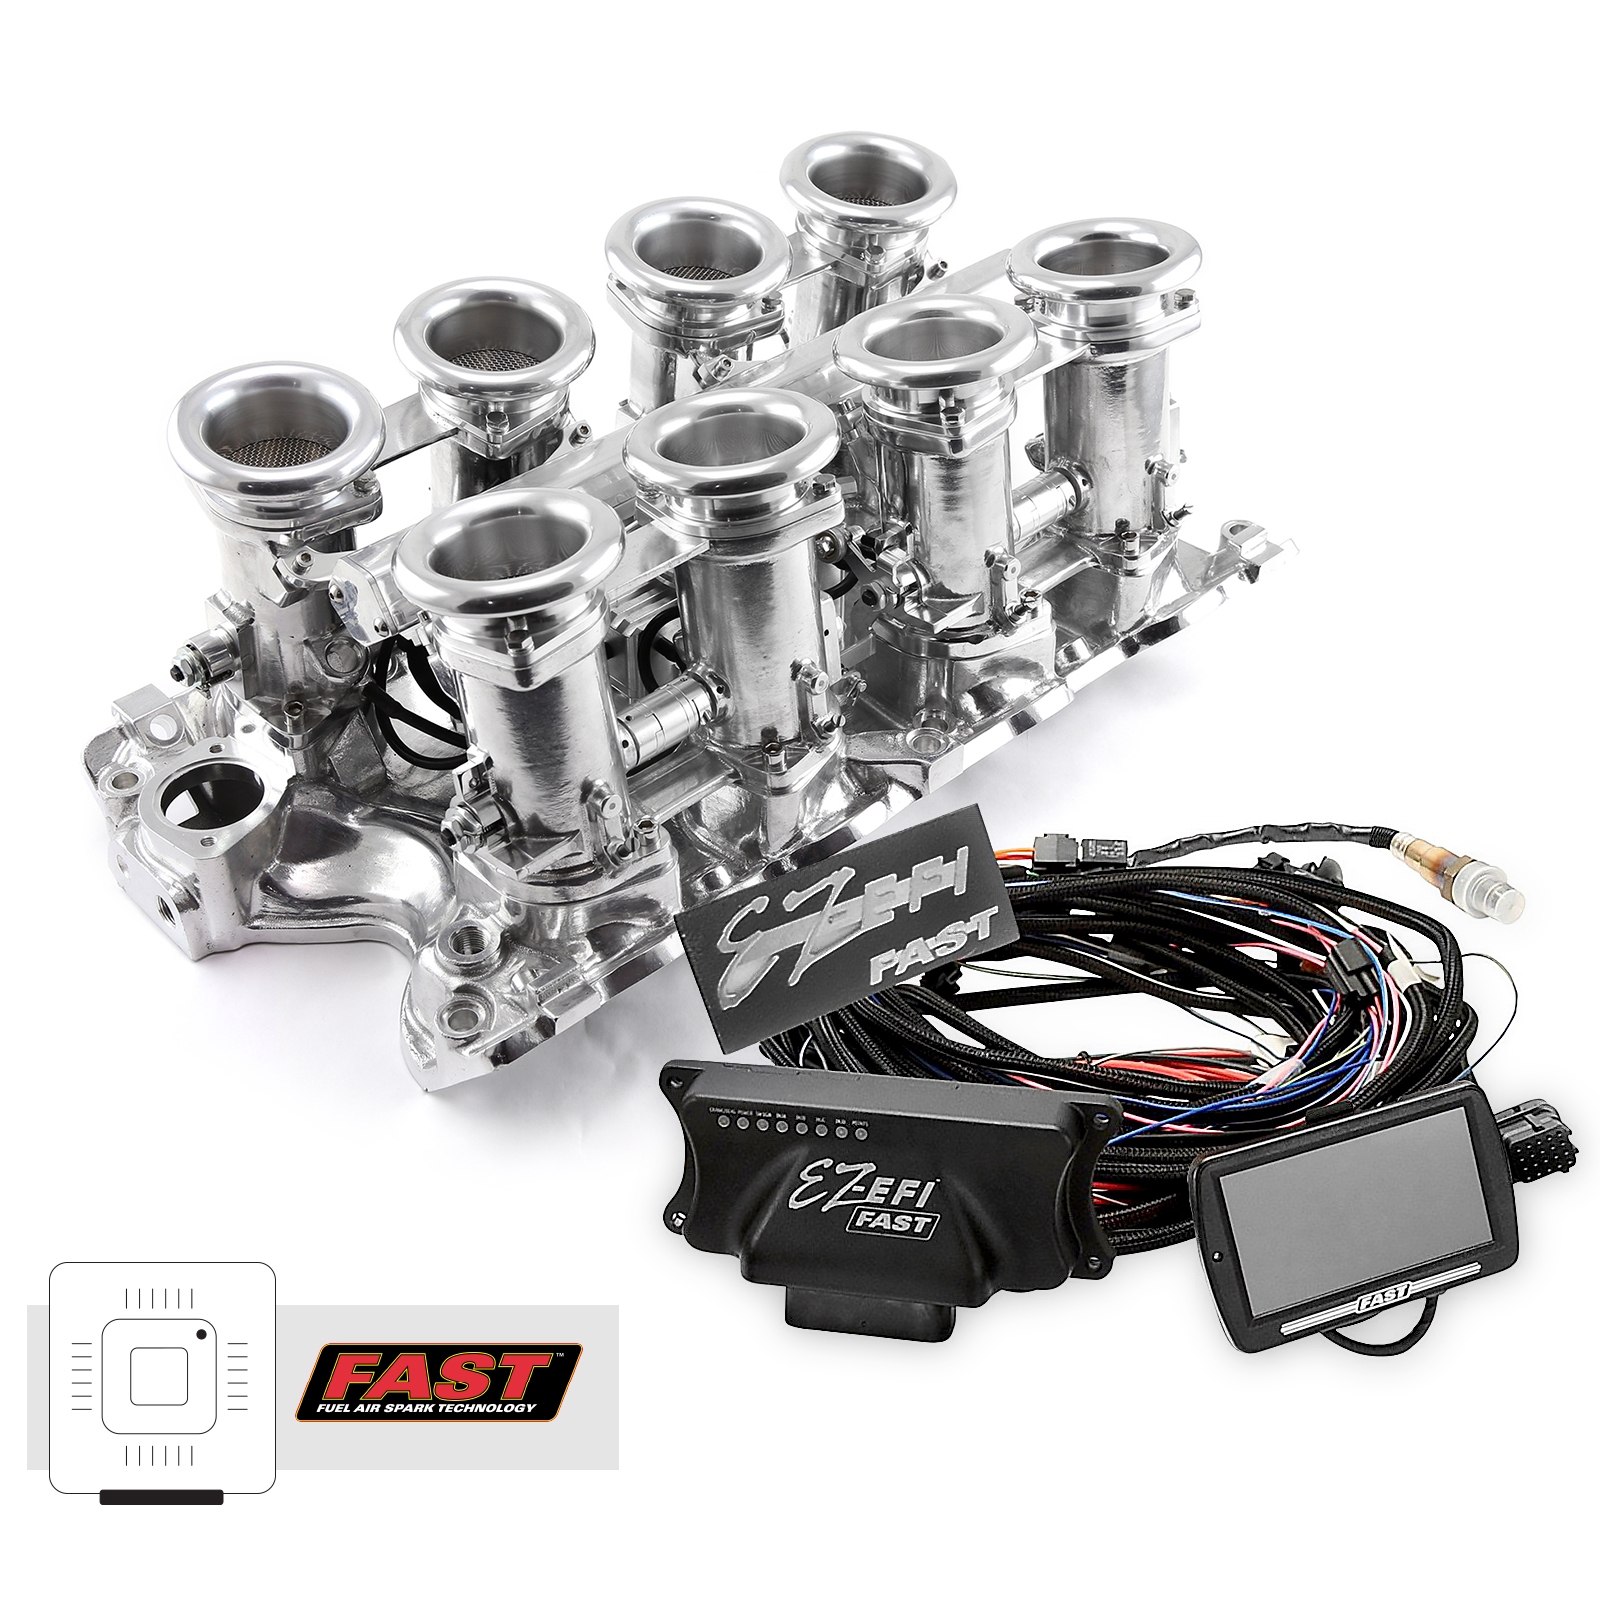 Ford BB 460 Downdraft + FAST EZ-EFI 2.0 Fuel Injection System - Polished